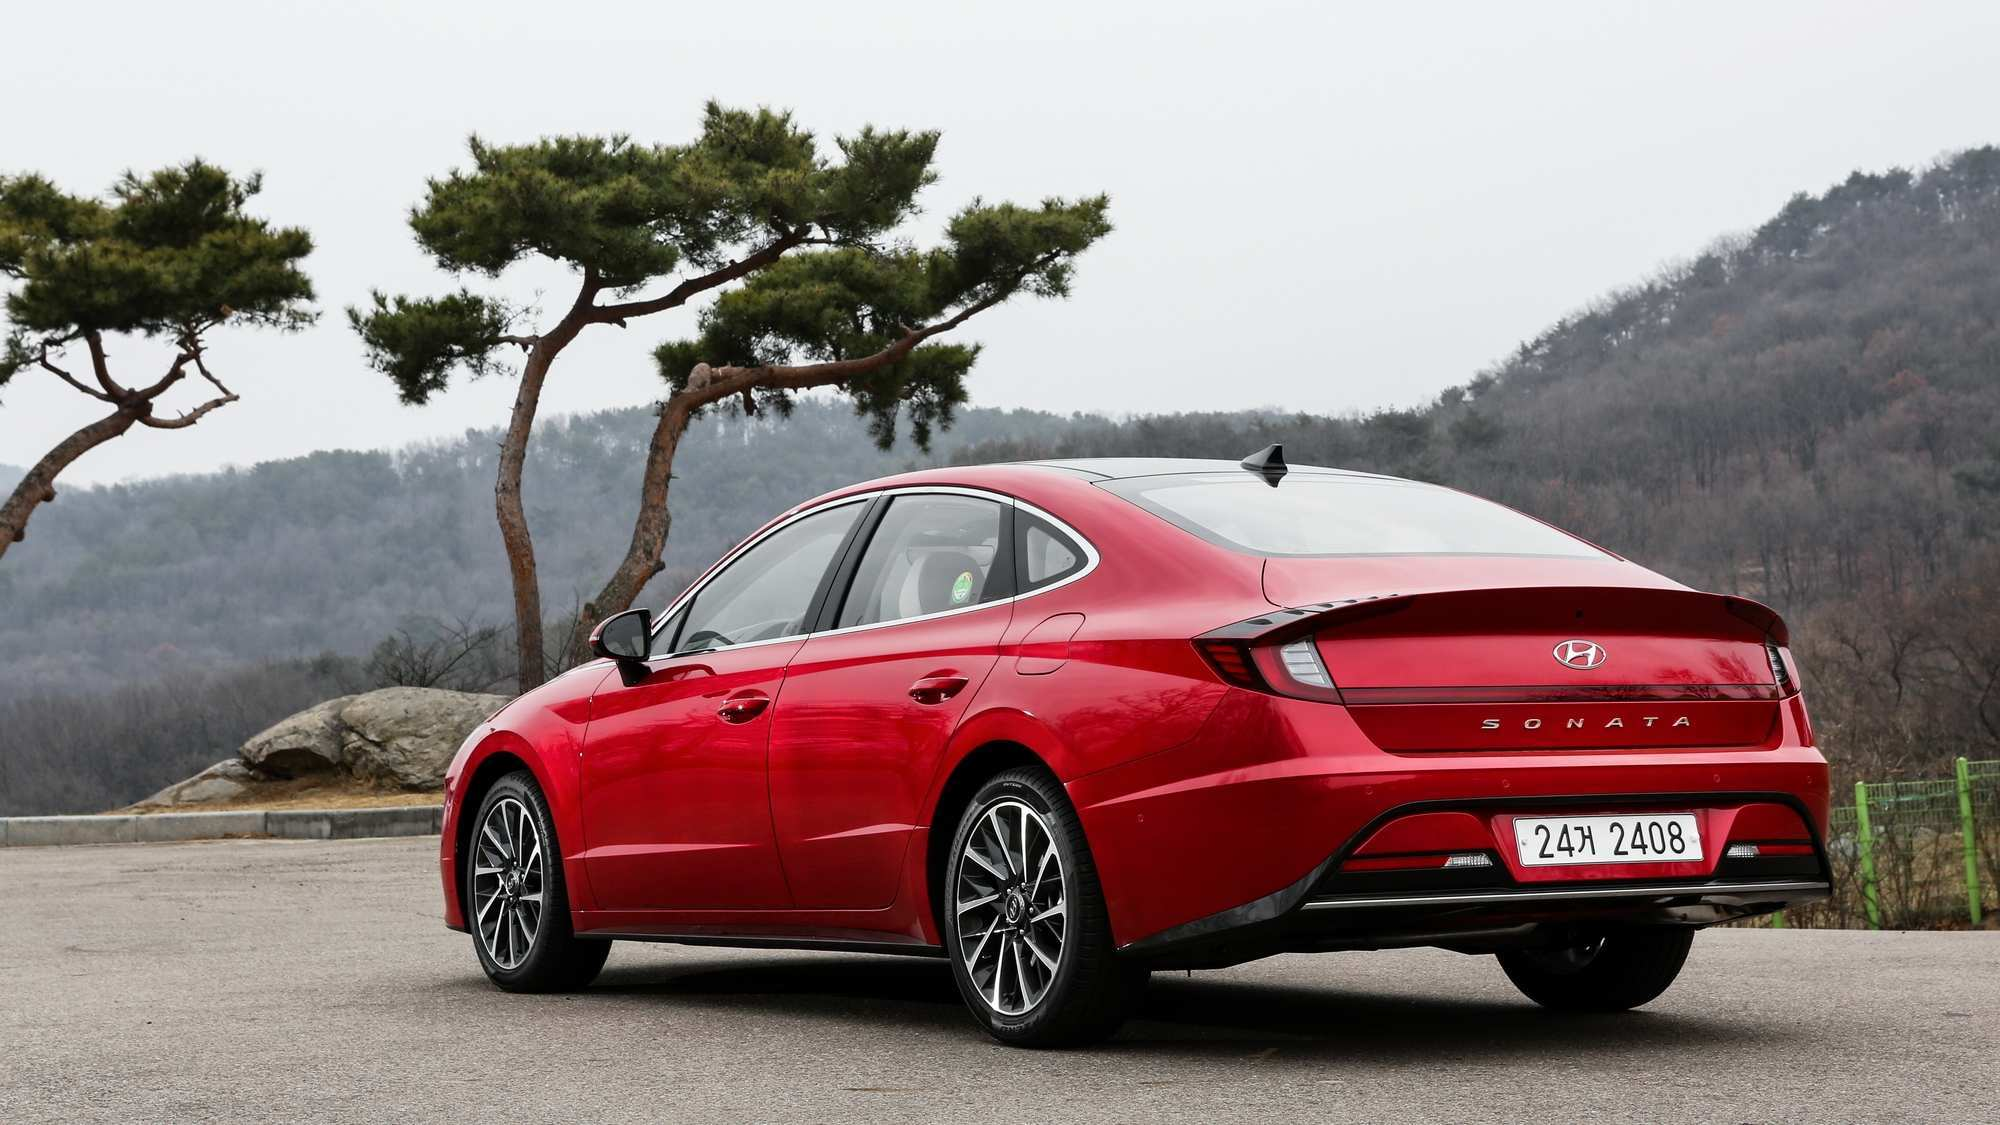 73 New 2020 Hyundai Sonata Engine Options Review and Release date